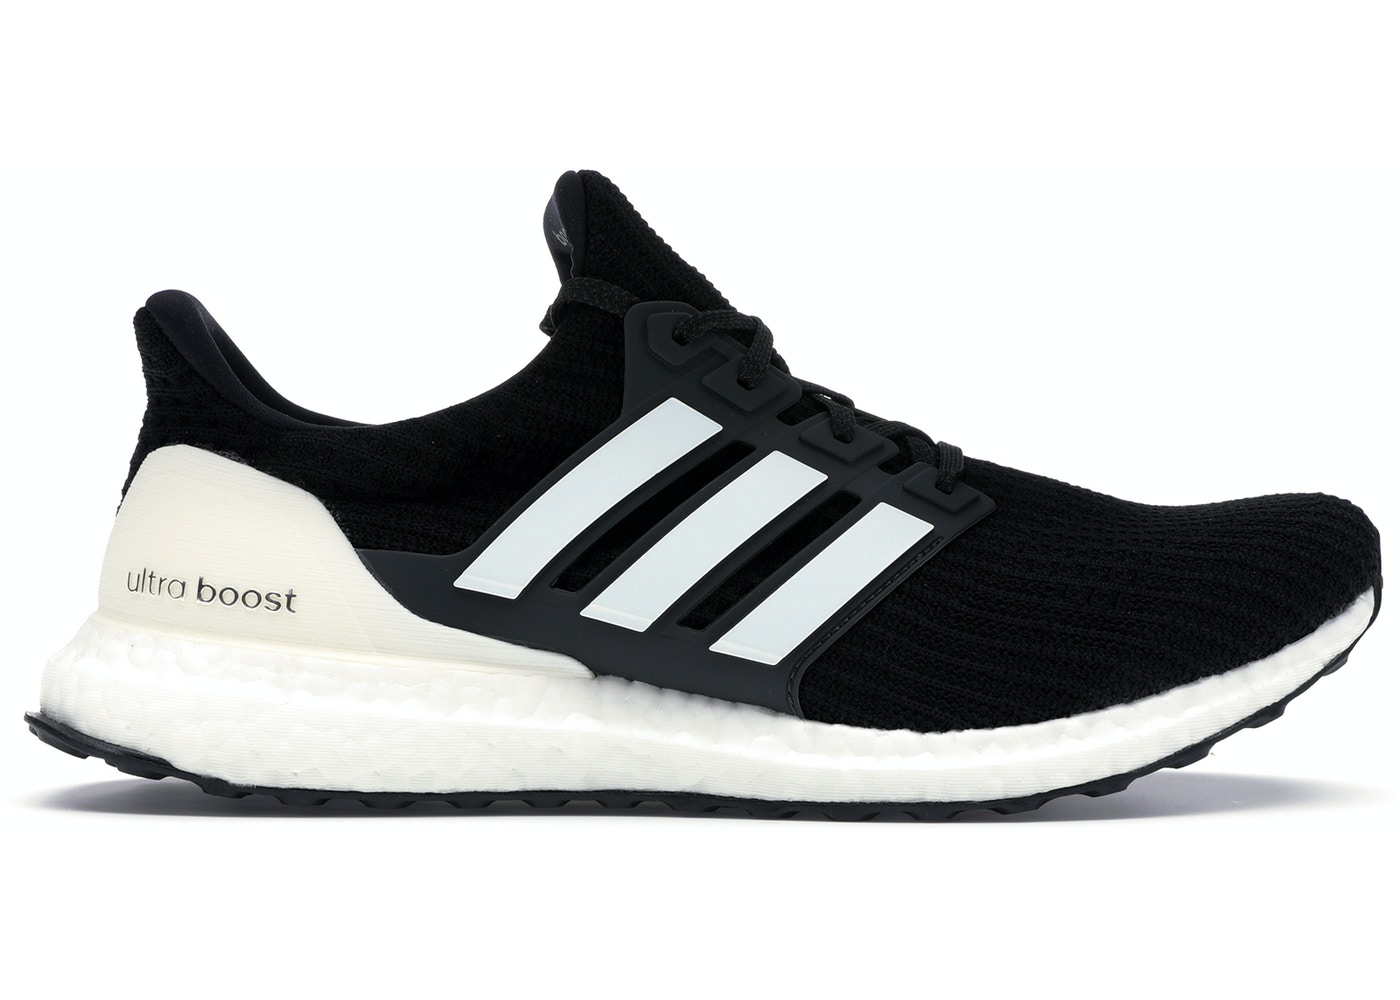 a8dd22ebb5f adidas Ultra Boost Shoes - Total Sold